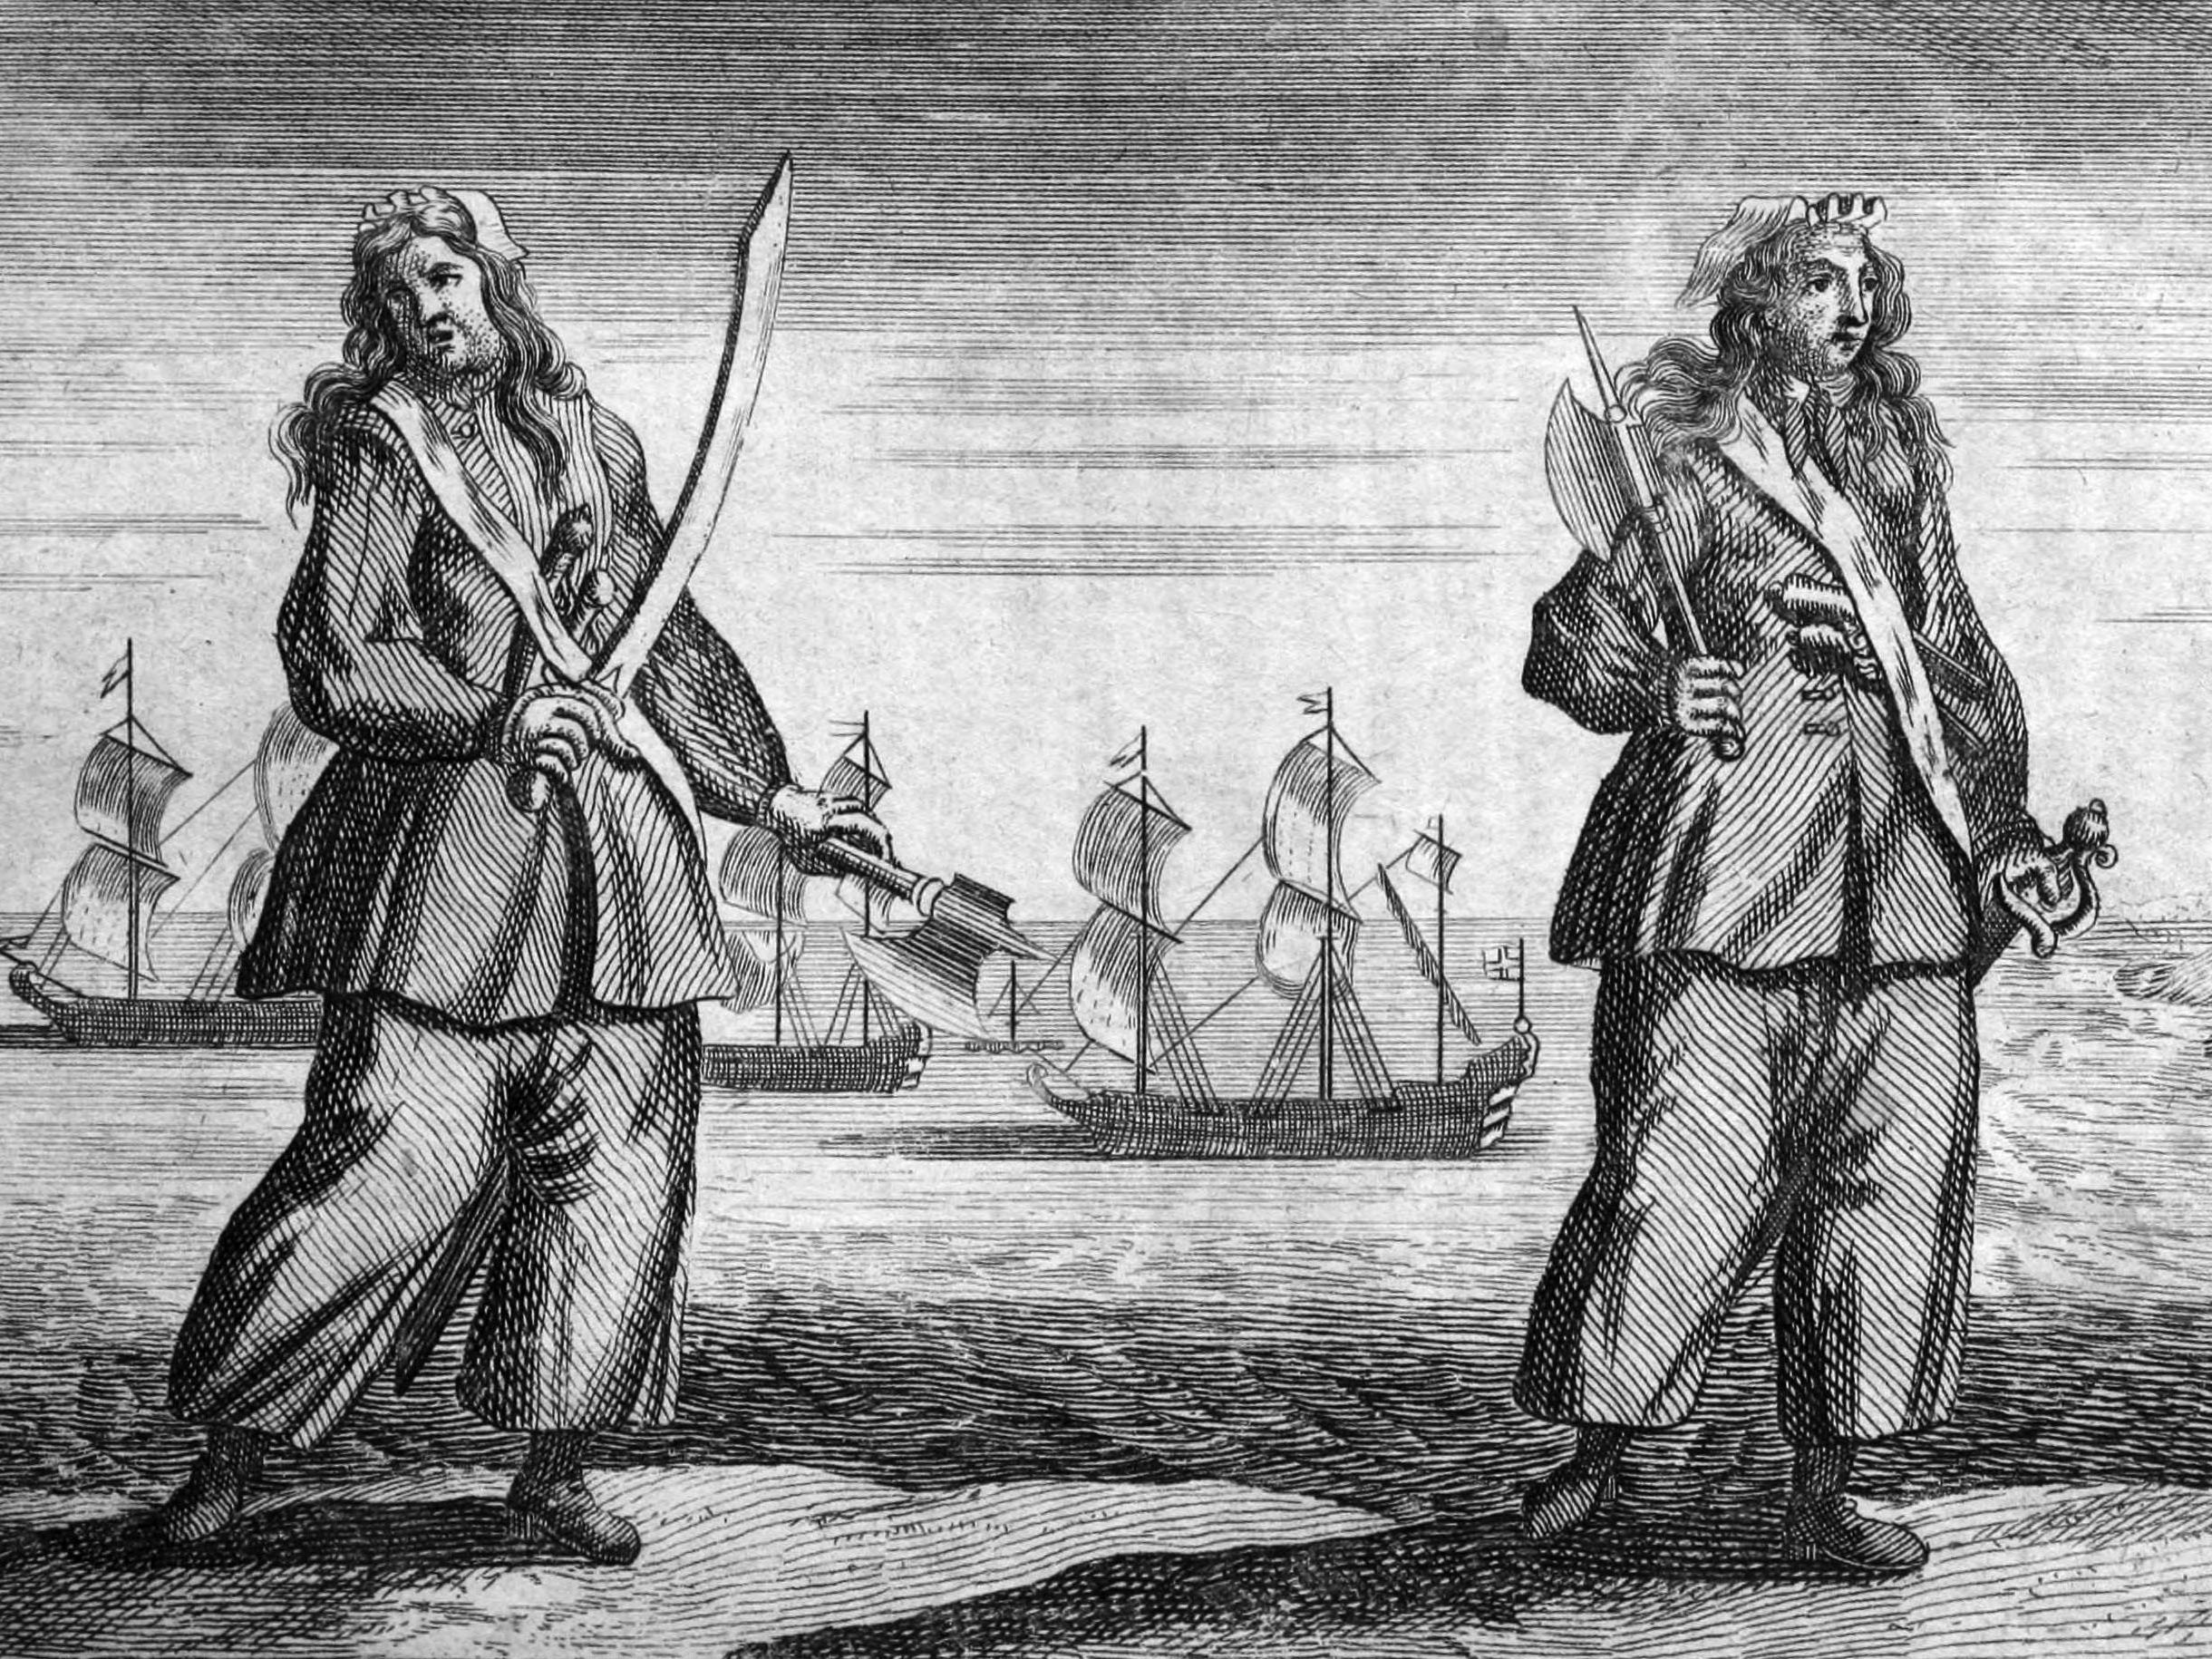 Biography of Anne Bonny, Irish Pirate and Privateer